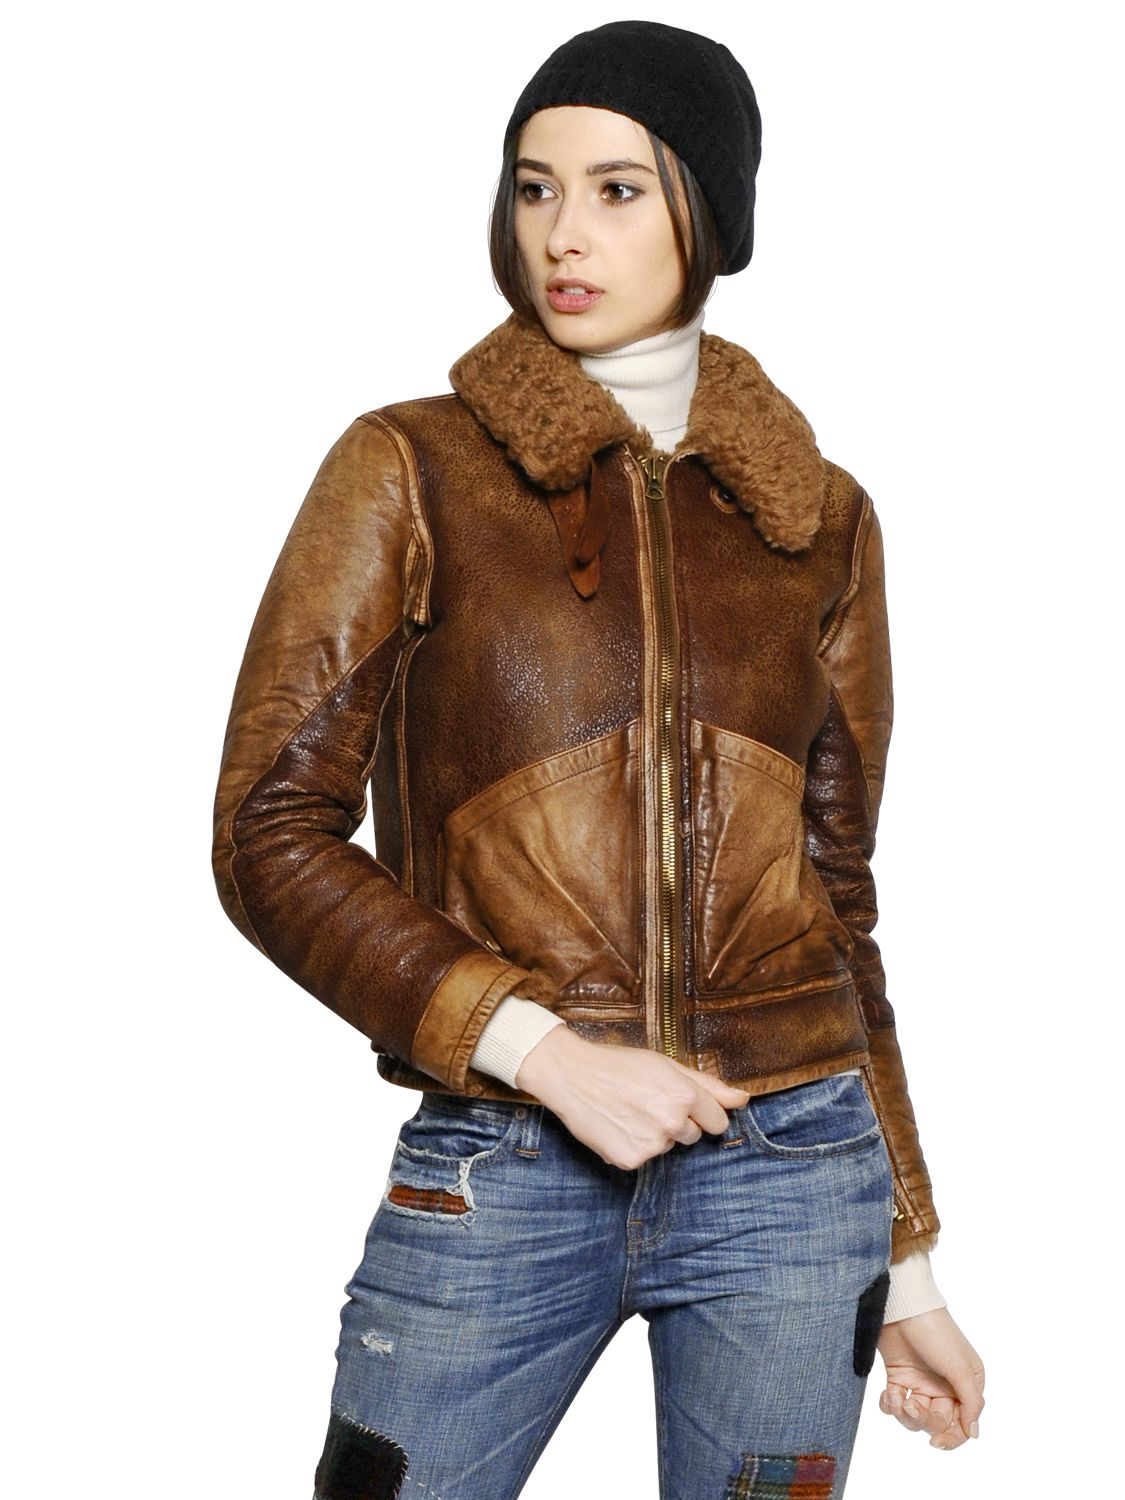 Lyst - Polo Ralph Lauren Shearling Leather Jacket In Brown